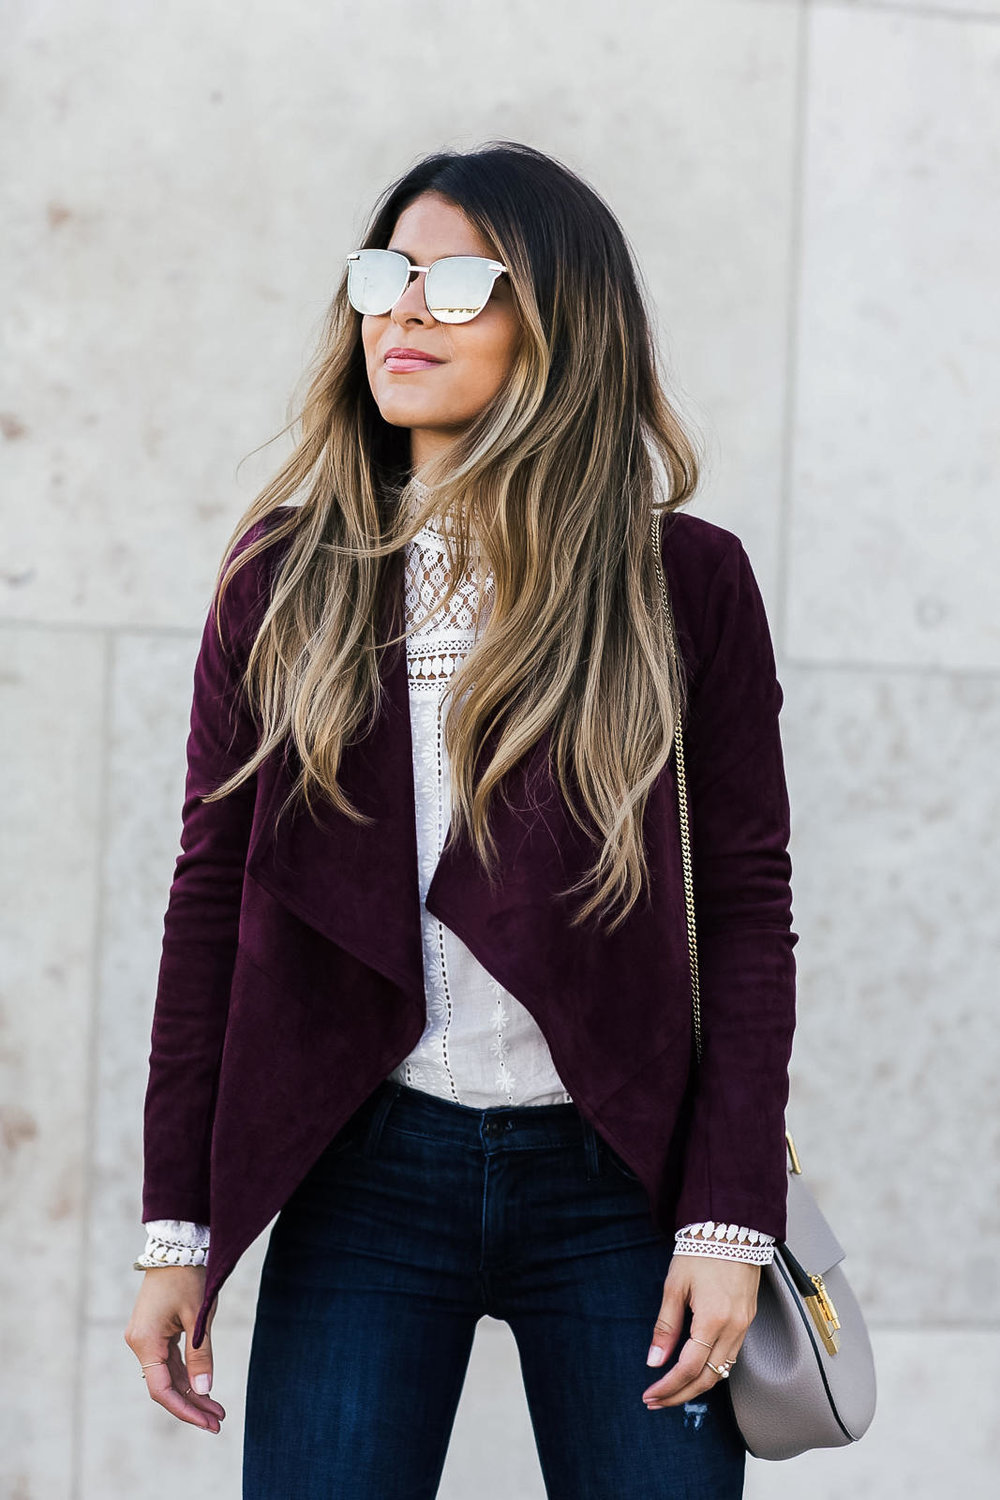 bb-dakota-suede-burgundy-jacket-lace-top-skinny-jeans-schutz-pumps-3-copy.jpg